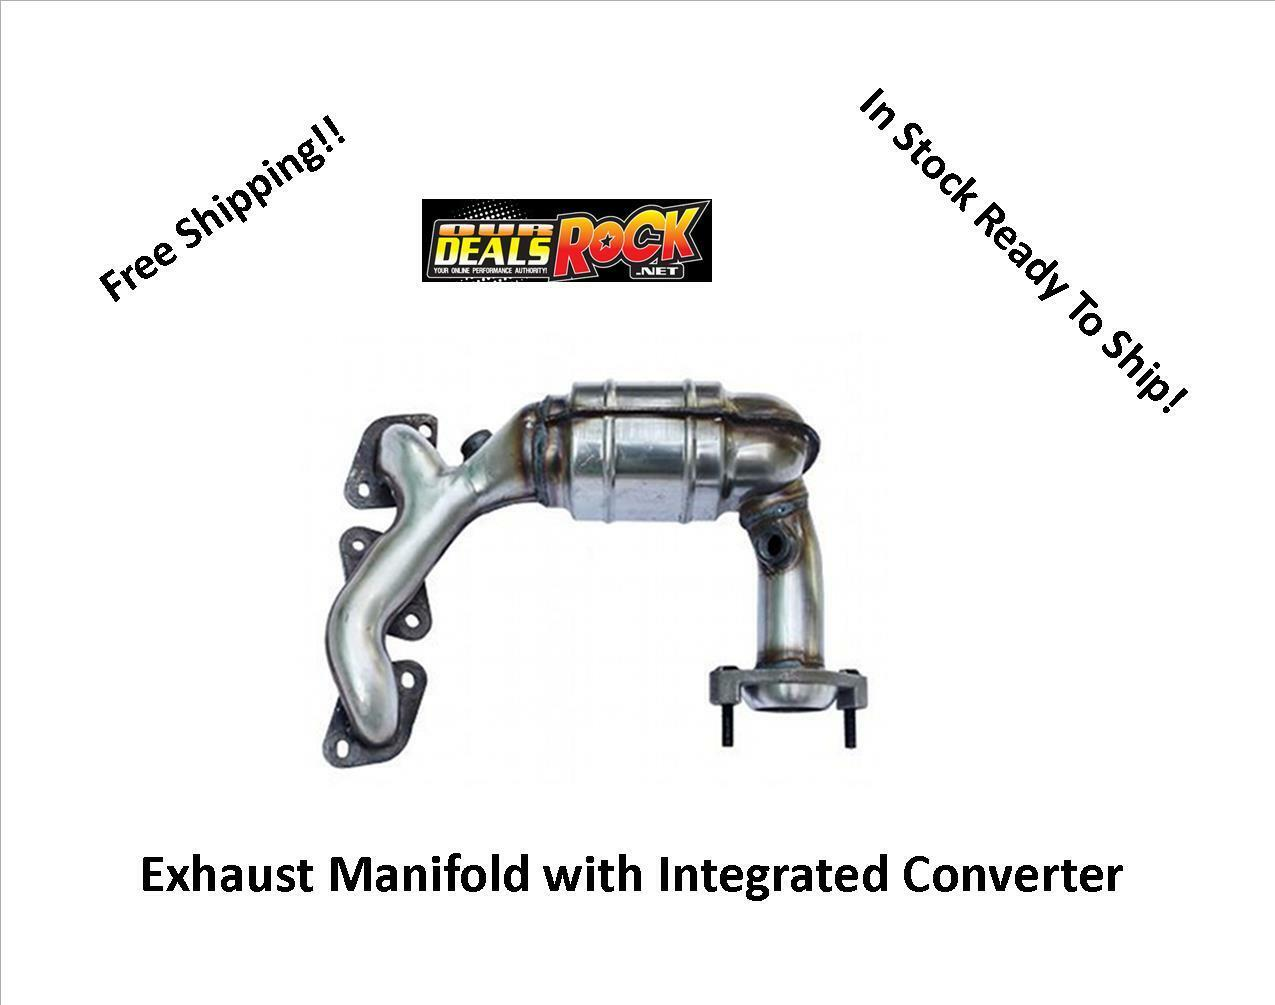 Exhaust Manifold with Integrated Catalytic Converter-GAS Natural Cateran FI